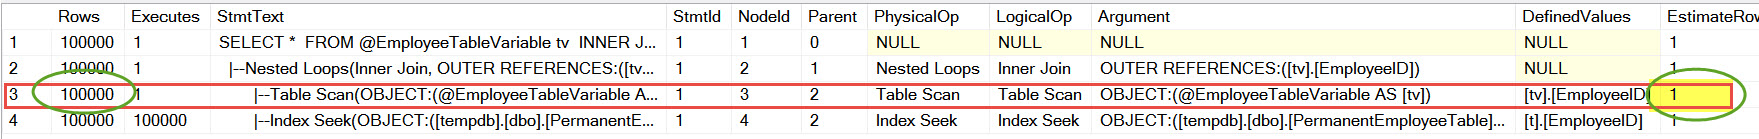 3 Important Facts for Developers About the SQL Server Table